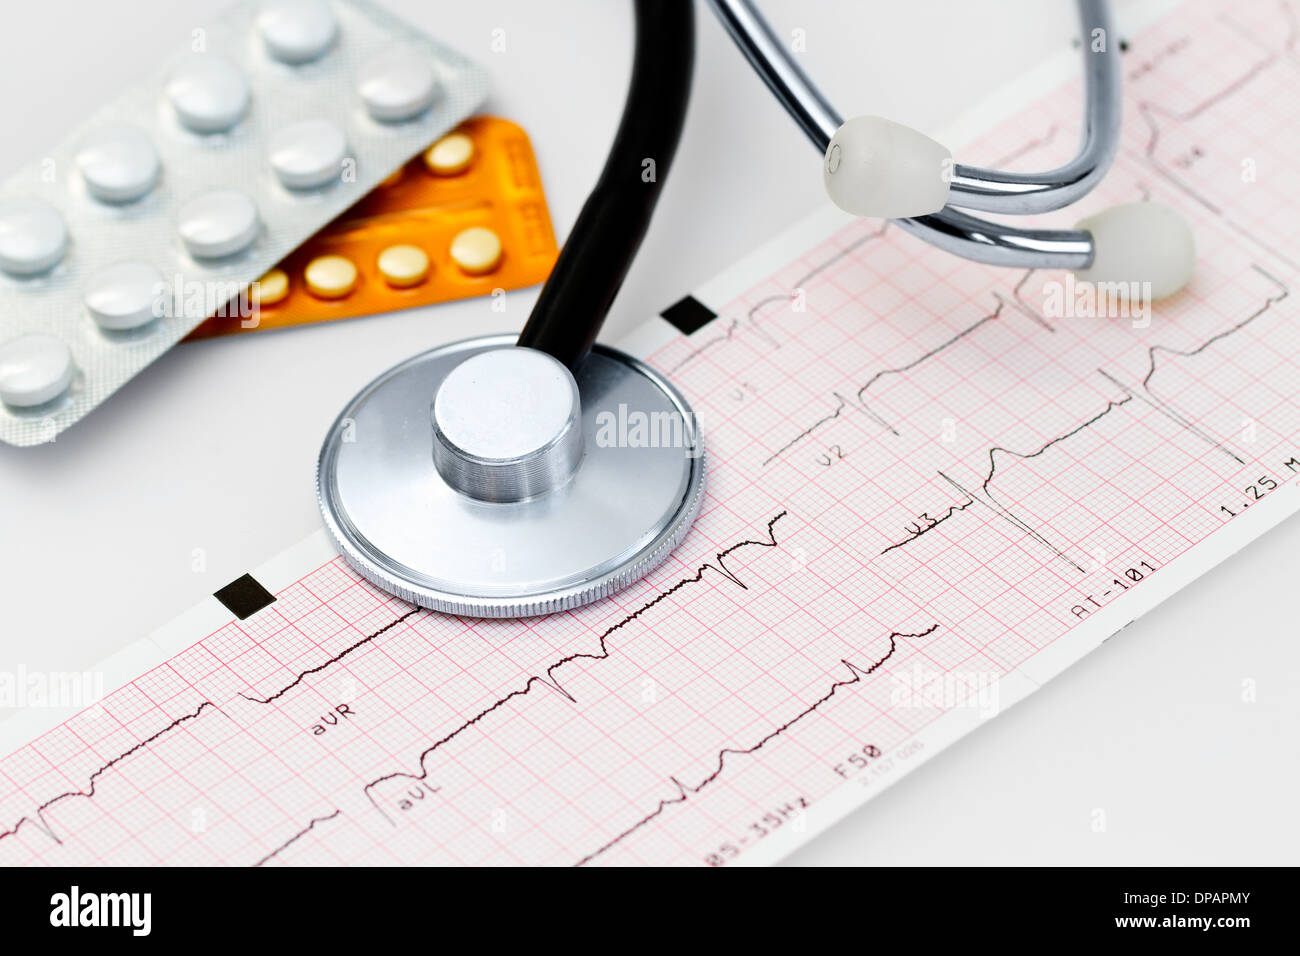 Cardiogram with stethoscope and cardio pills - Stock Image